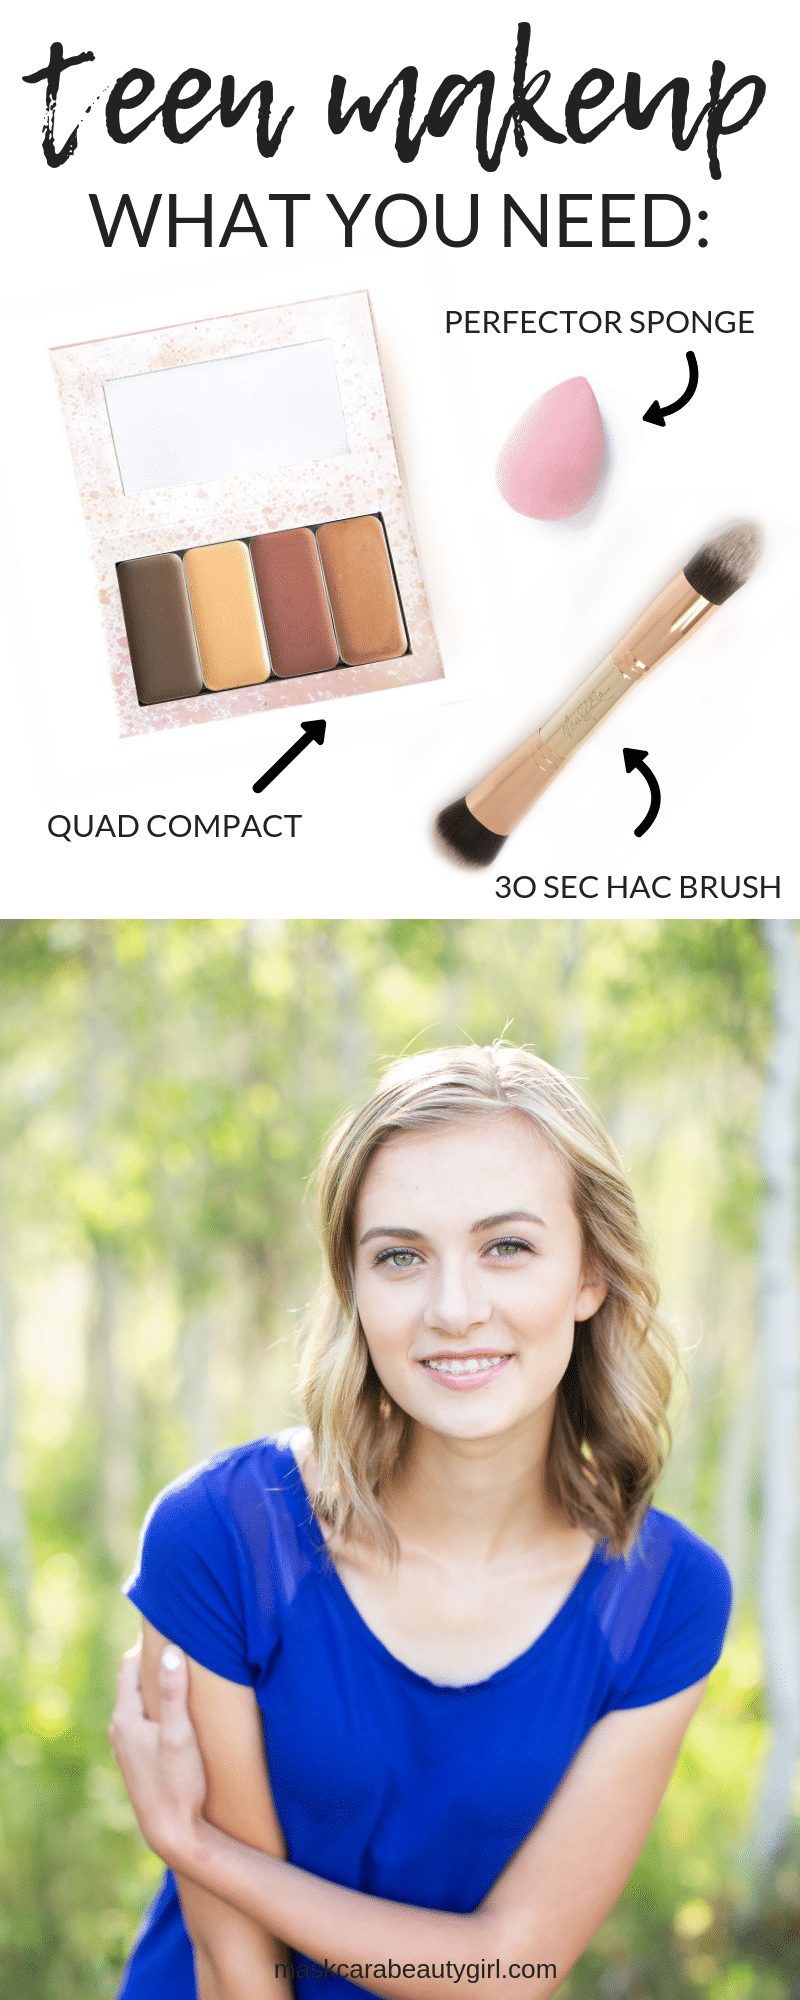 The Perfect Makeup for Teens!